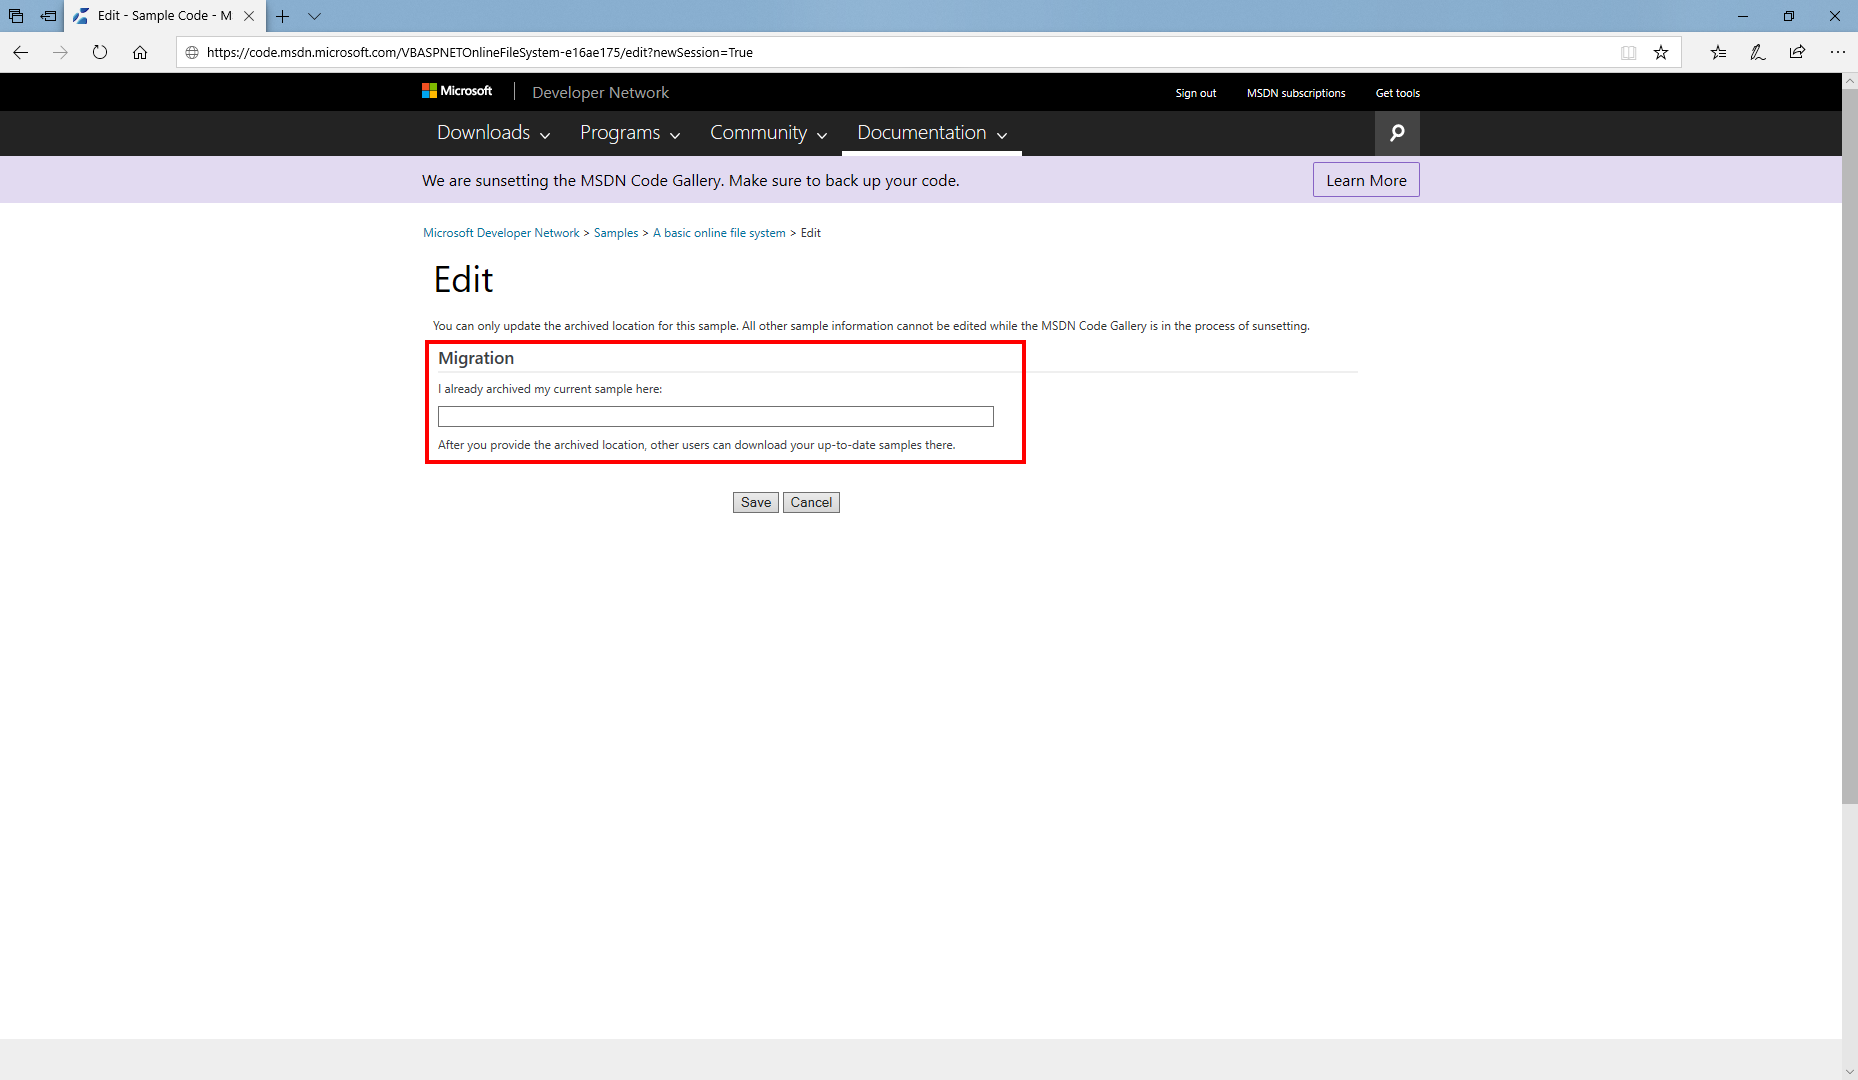 MSDN Code Gallery edit sample page migration section